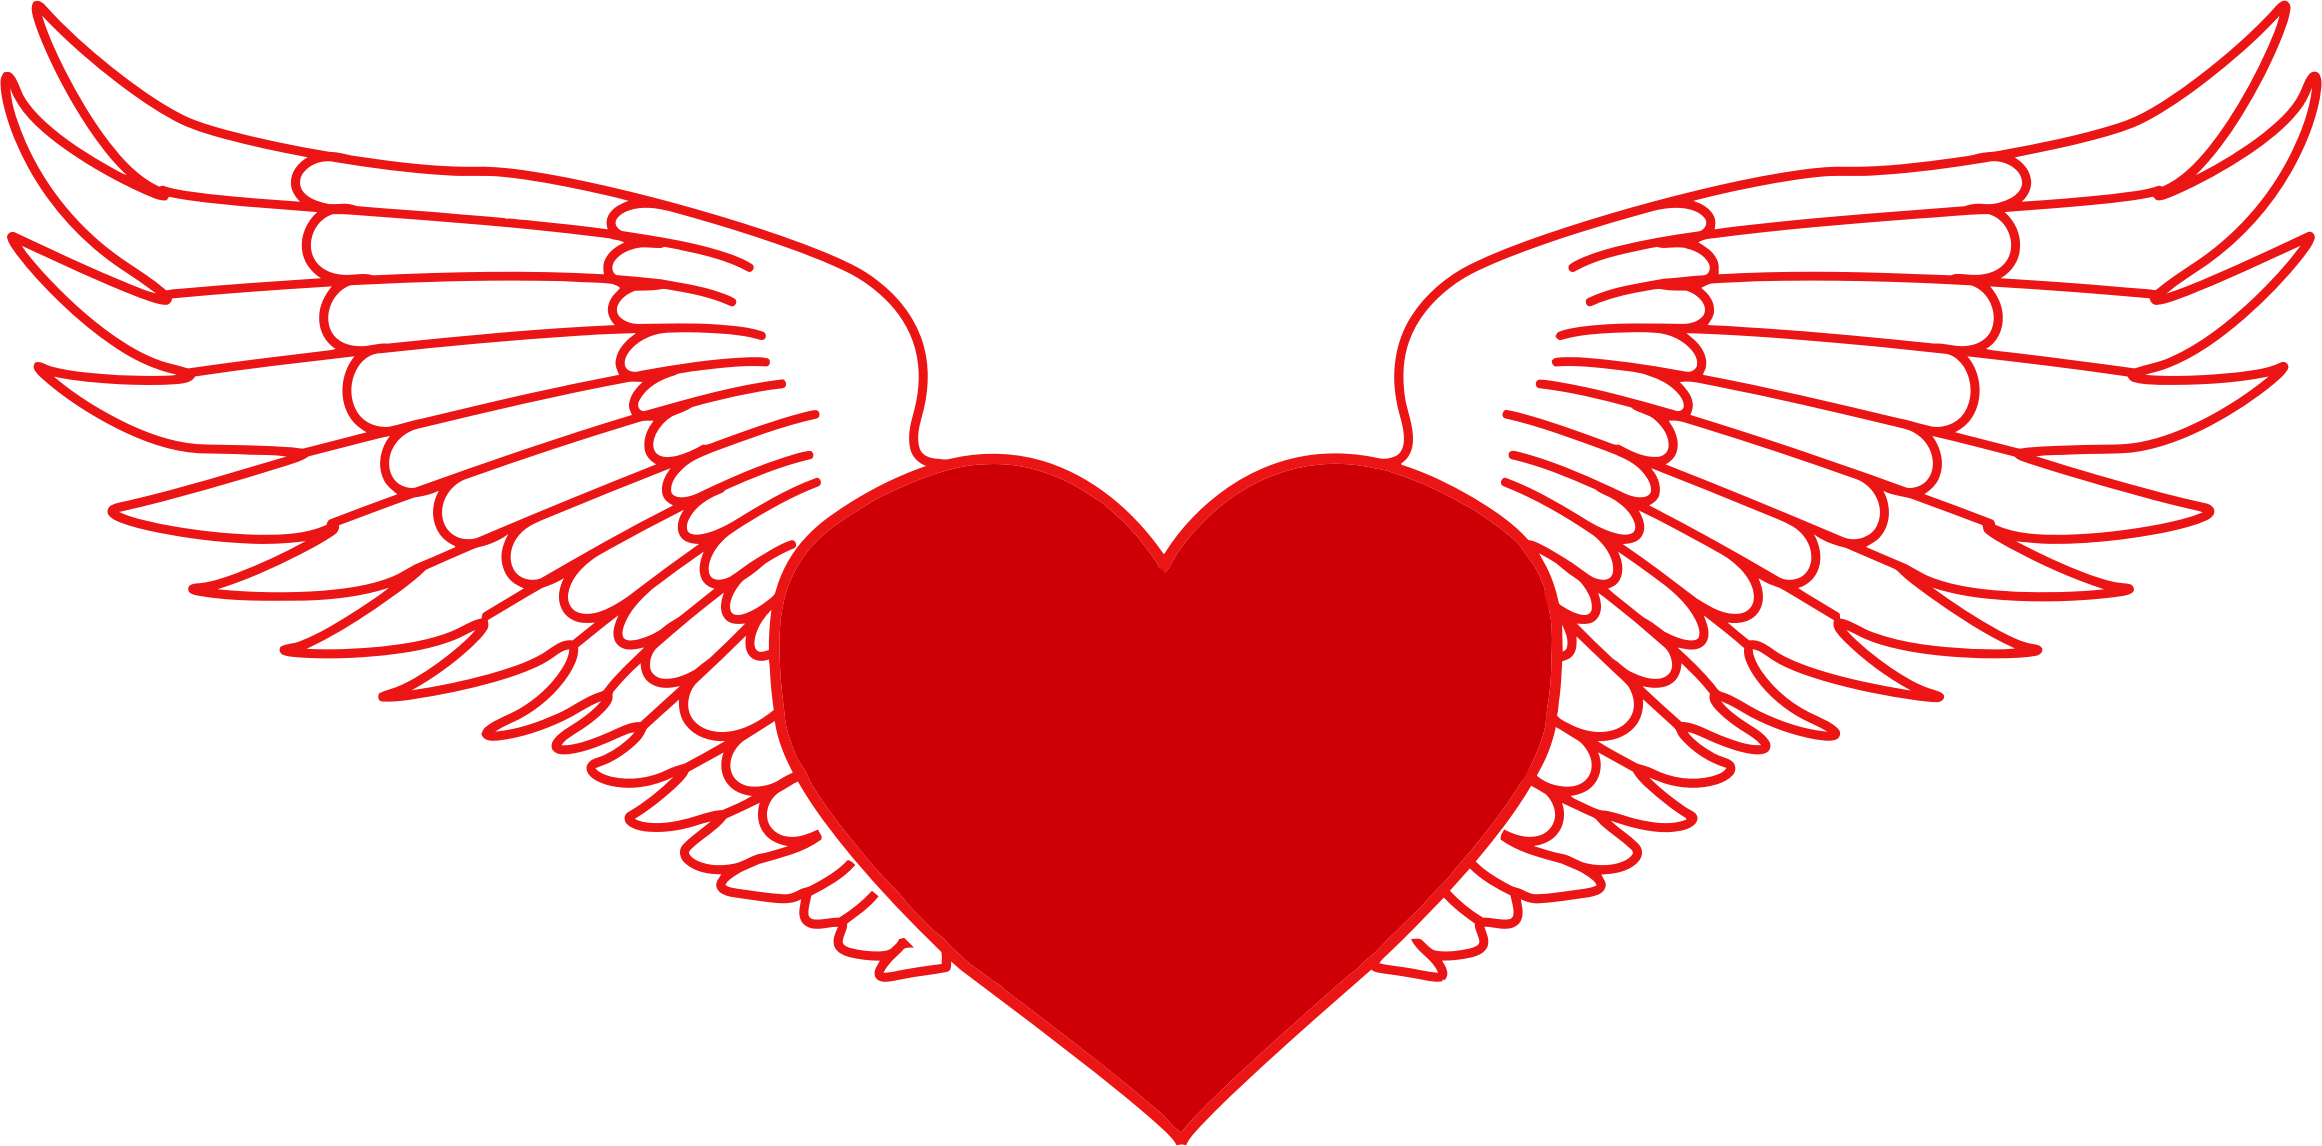 Wing clipart heart, Wing heart Transparent FREE for download.